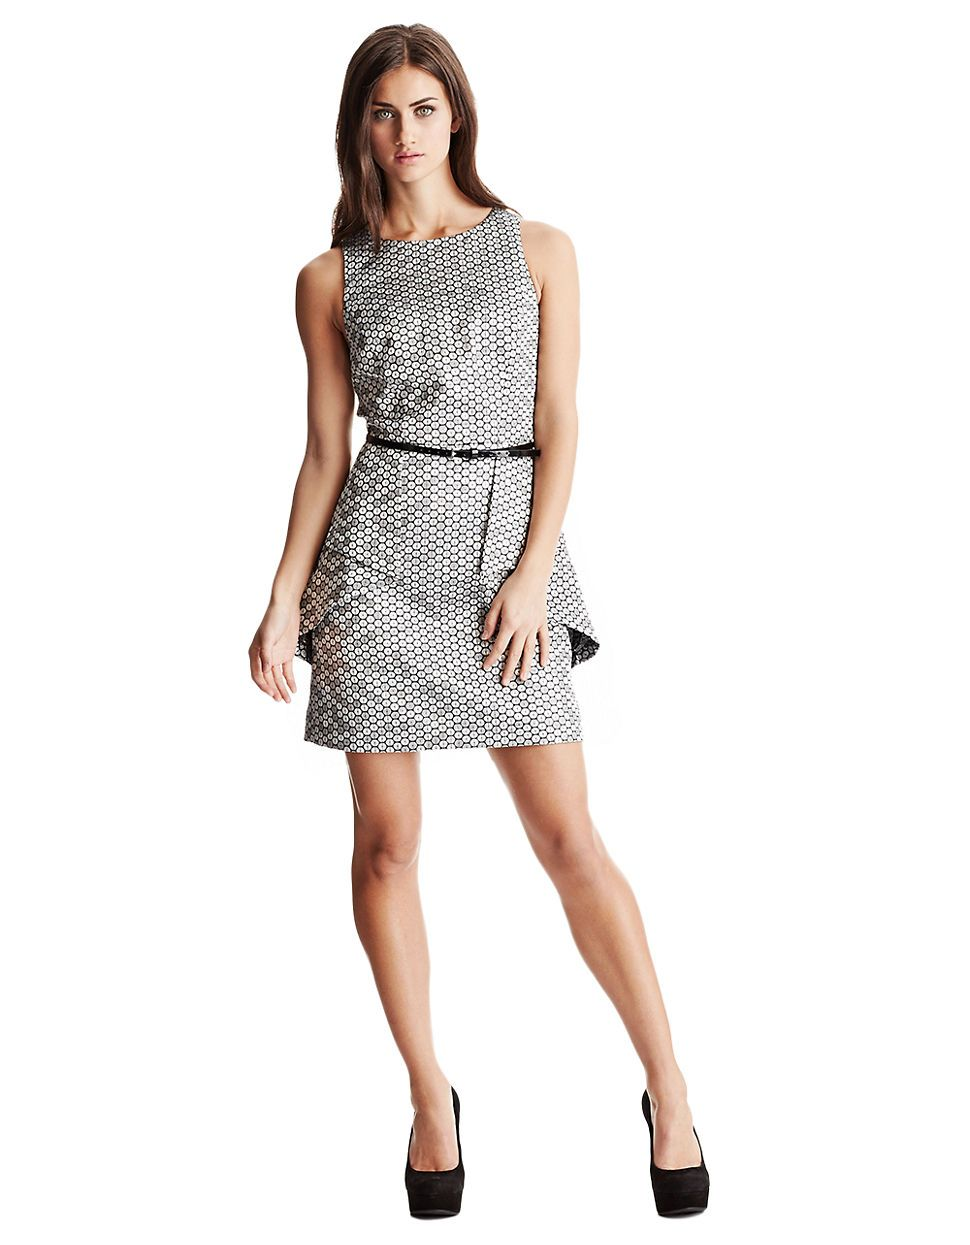 71fca65ad4132 Cocktail Dresses At Lord And Taylor | Saddha